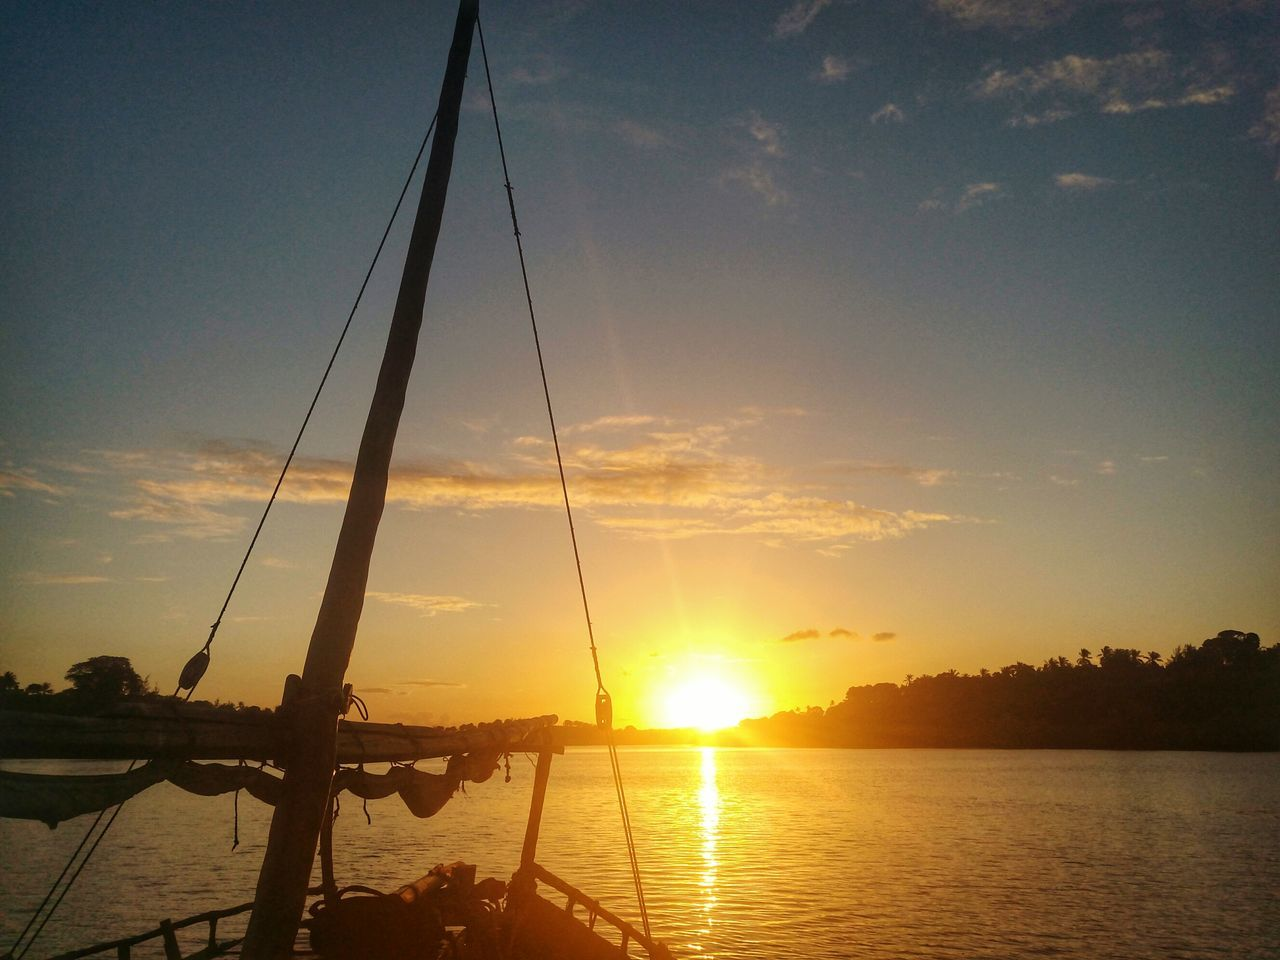 A beautiful evening with friends who have become family ❤ (We later on got shipwrecked 😂😂😭)Water Sky Sunset Silhouette Nautical Vessel Sun Cloud - Sky Beauty In Nature Creek Outdoors Adventure Lovemylife Lovemycity Mombasa Kenya Nature Scenics Day Sea Dhow Boat Boat Ride The Great Outdoors - 2017 EyeEm Awards EyeEmNewHere